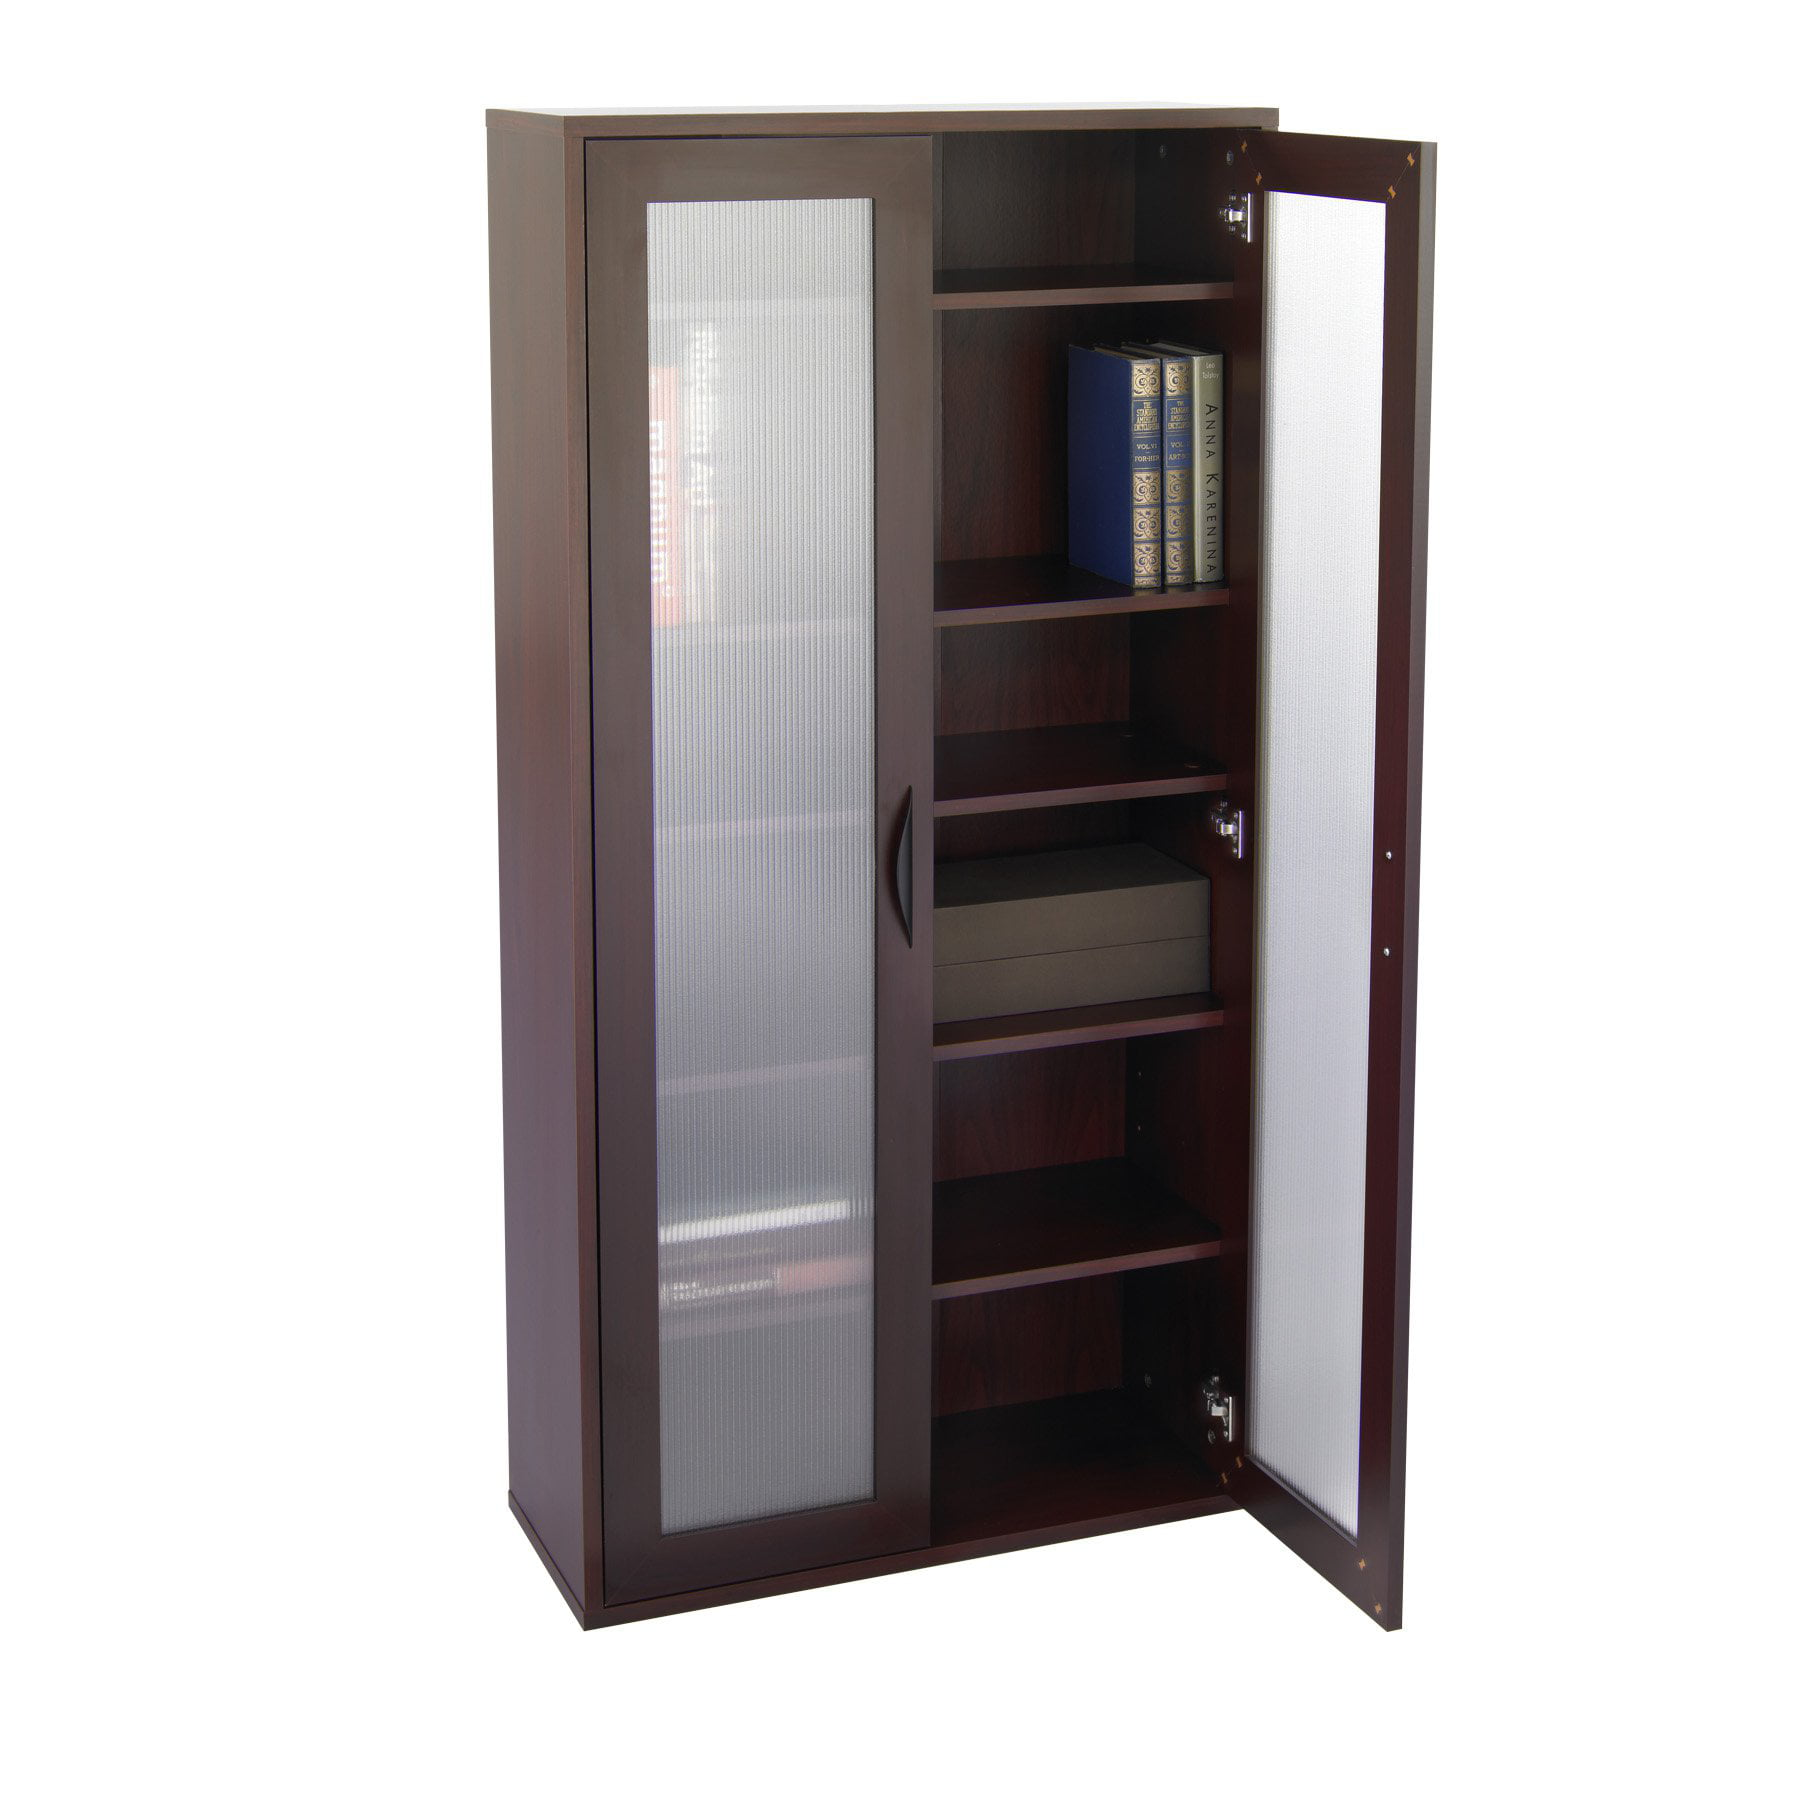 Marvelous Storage Bookcase With Glass Doors Tall   Mahogany   Walmart.com